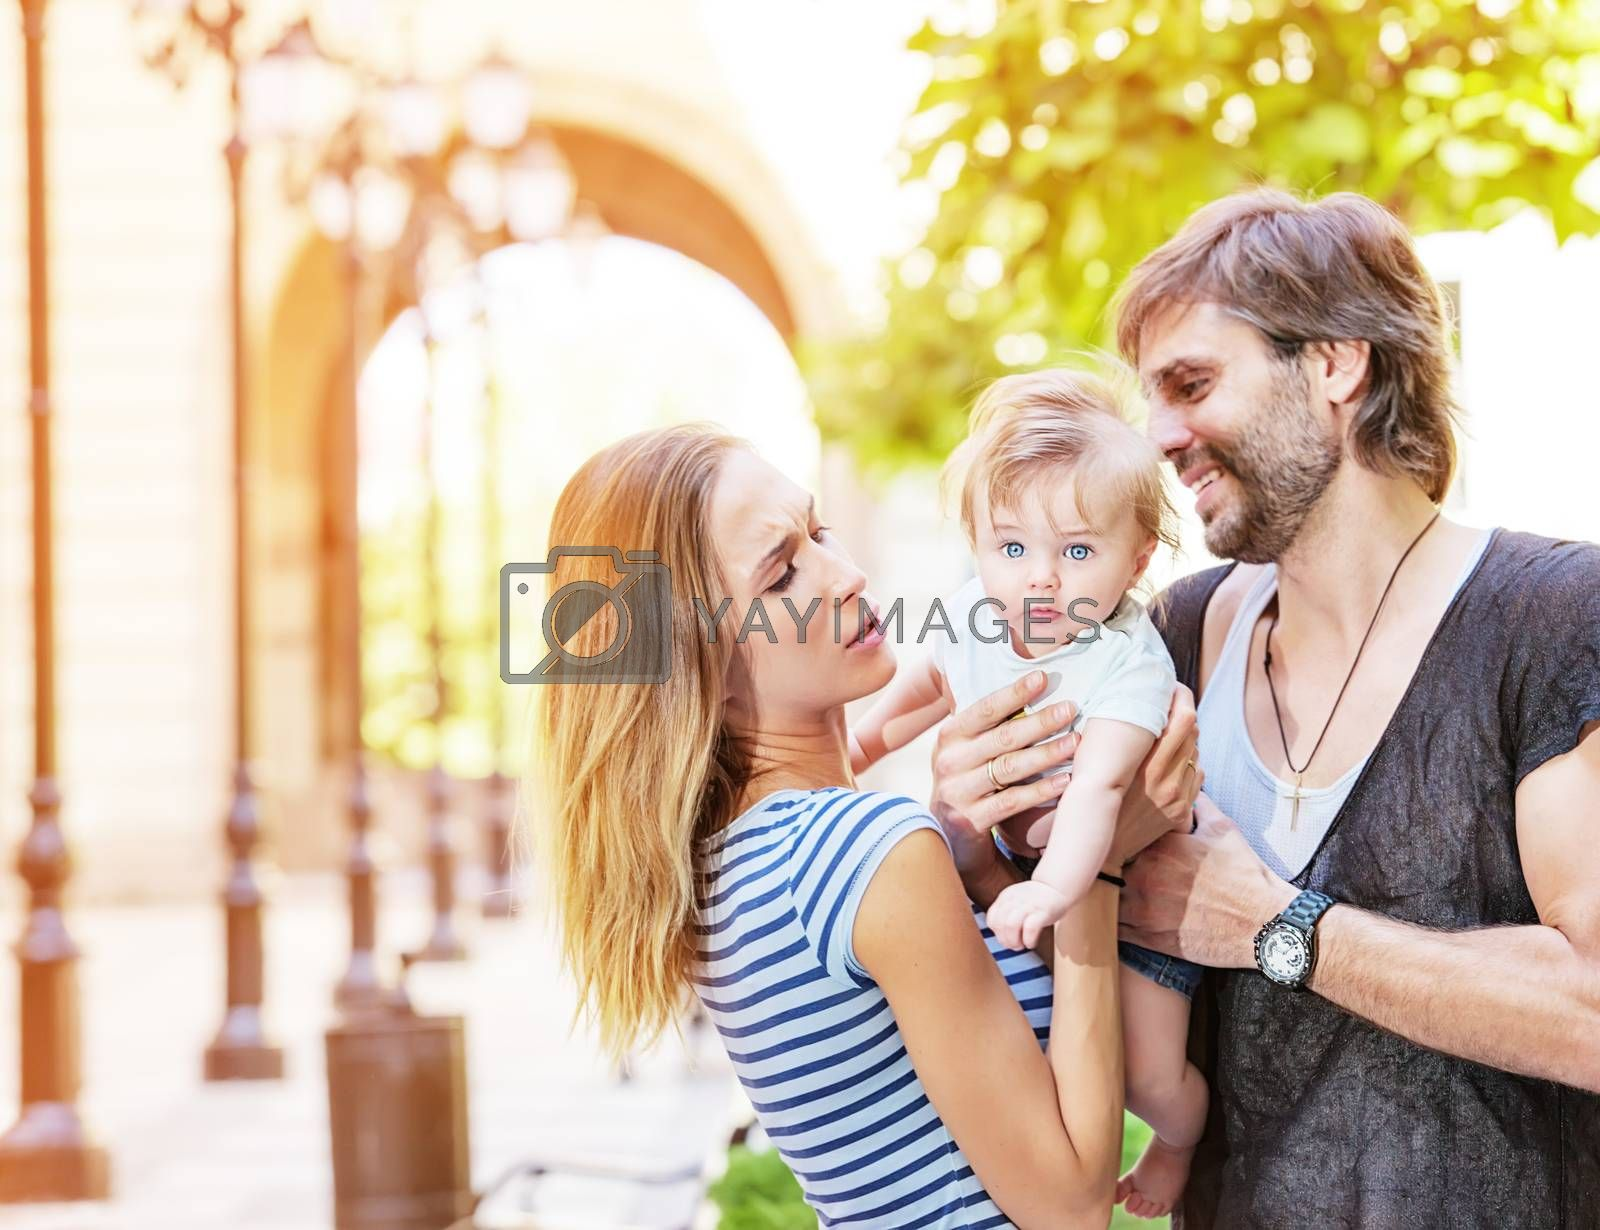 A young family couple with their cute little baby boy outdoors.